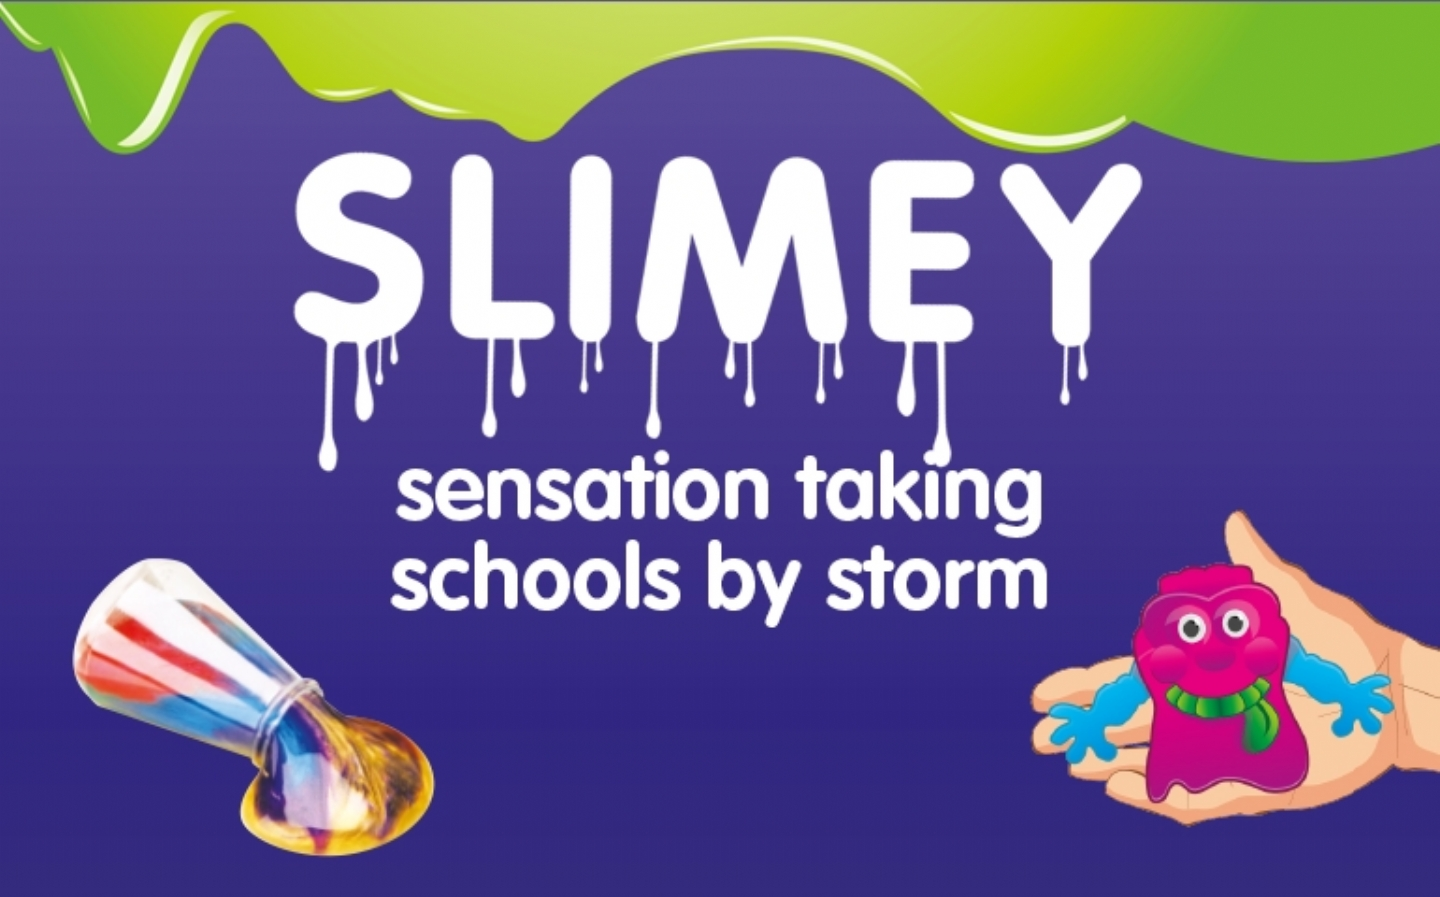 Slimey sensation taking schools by storm